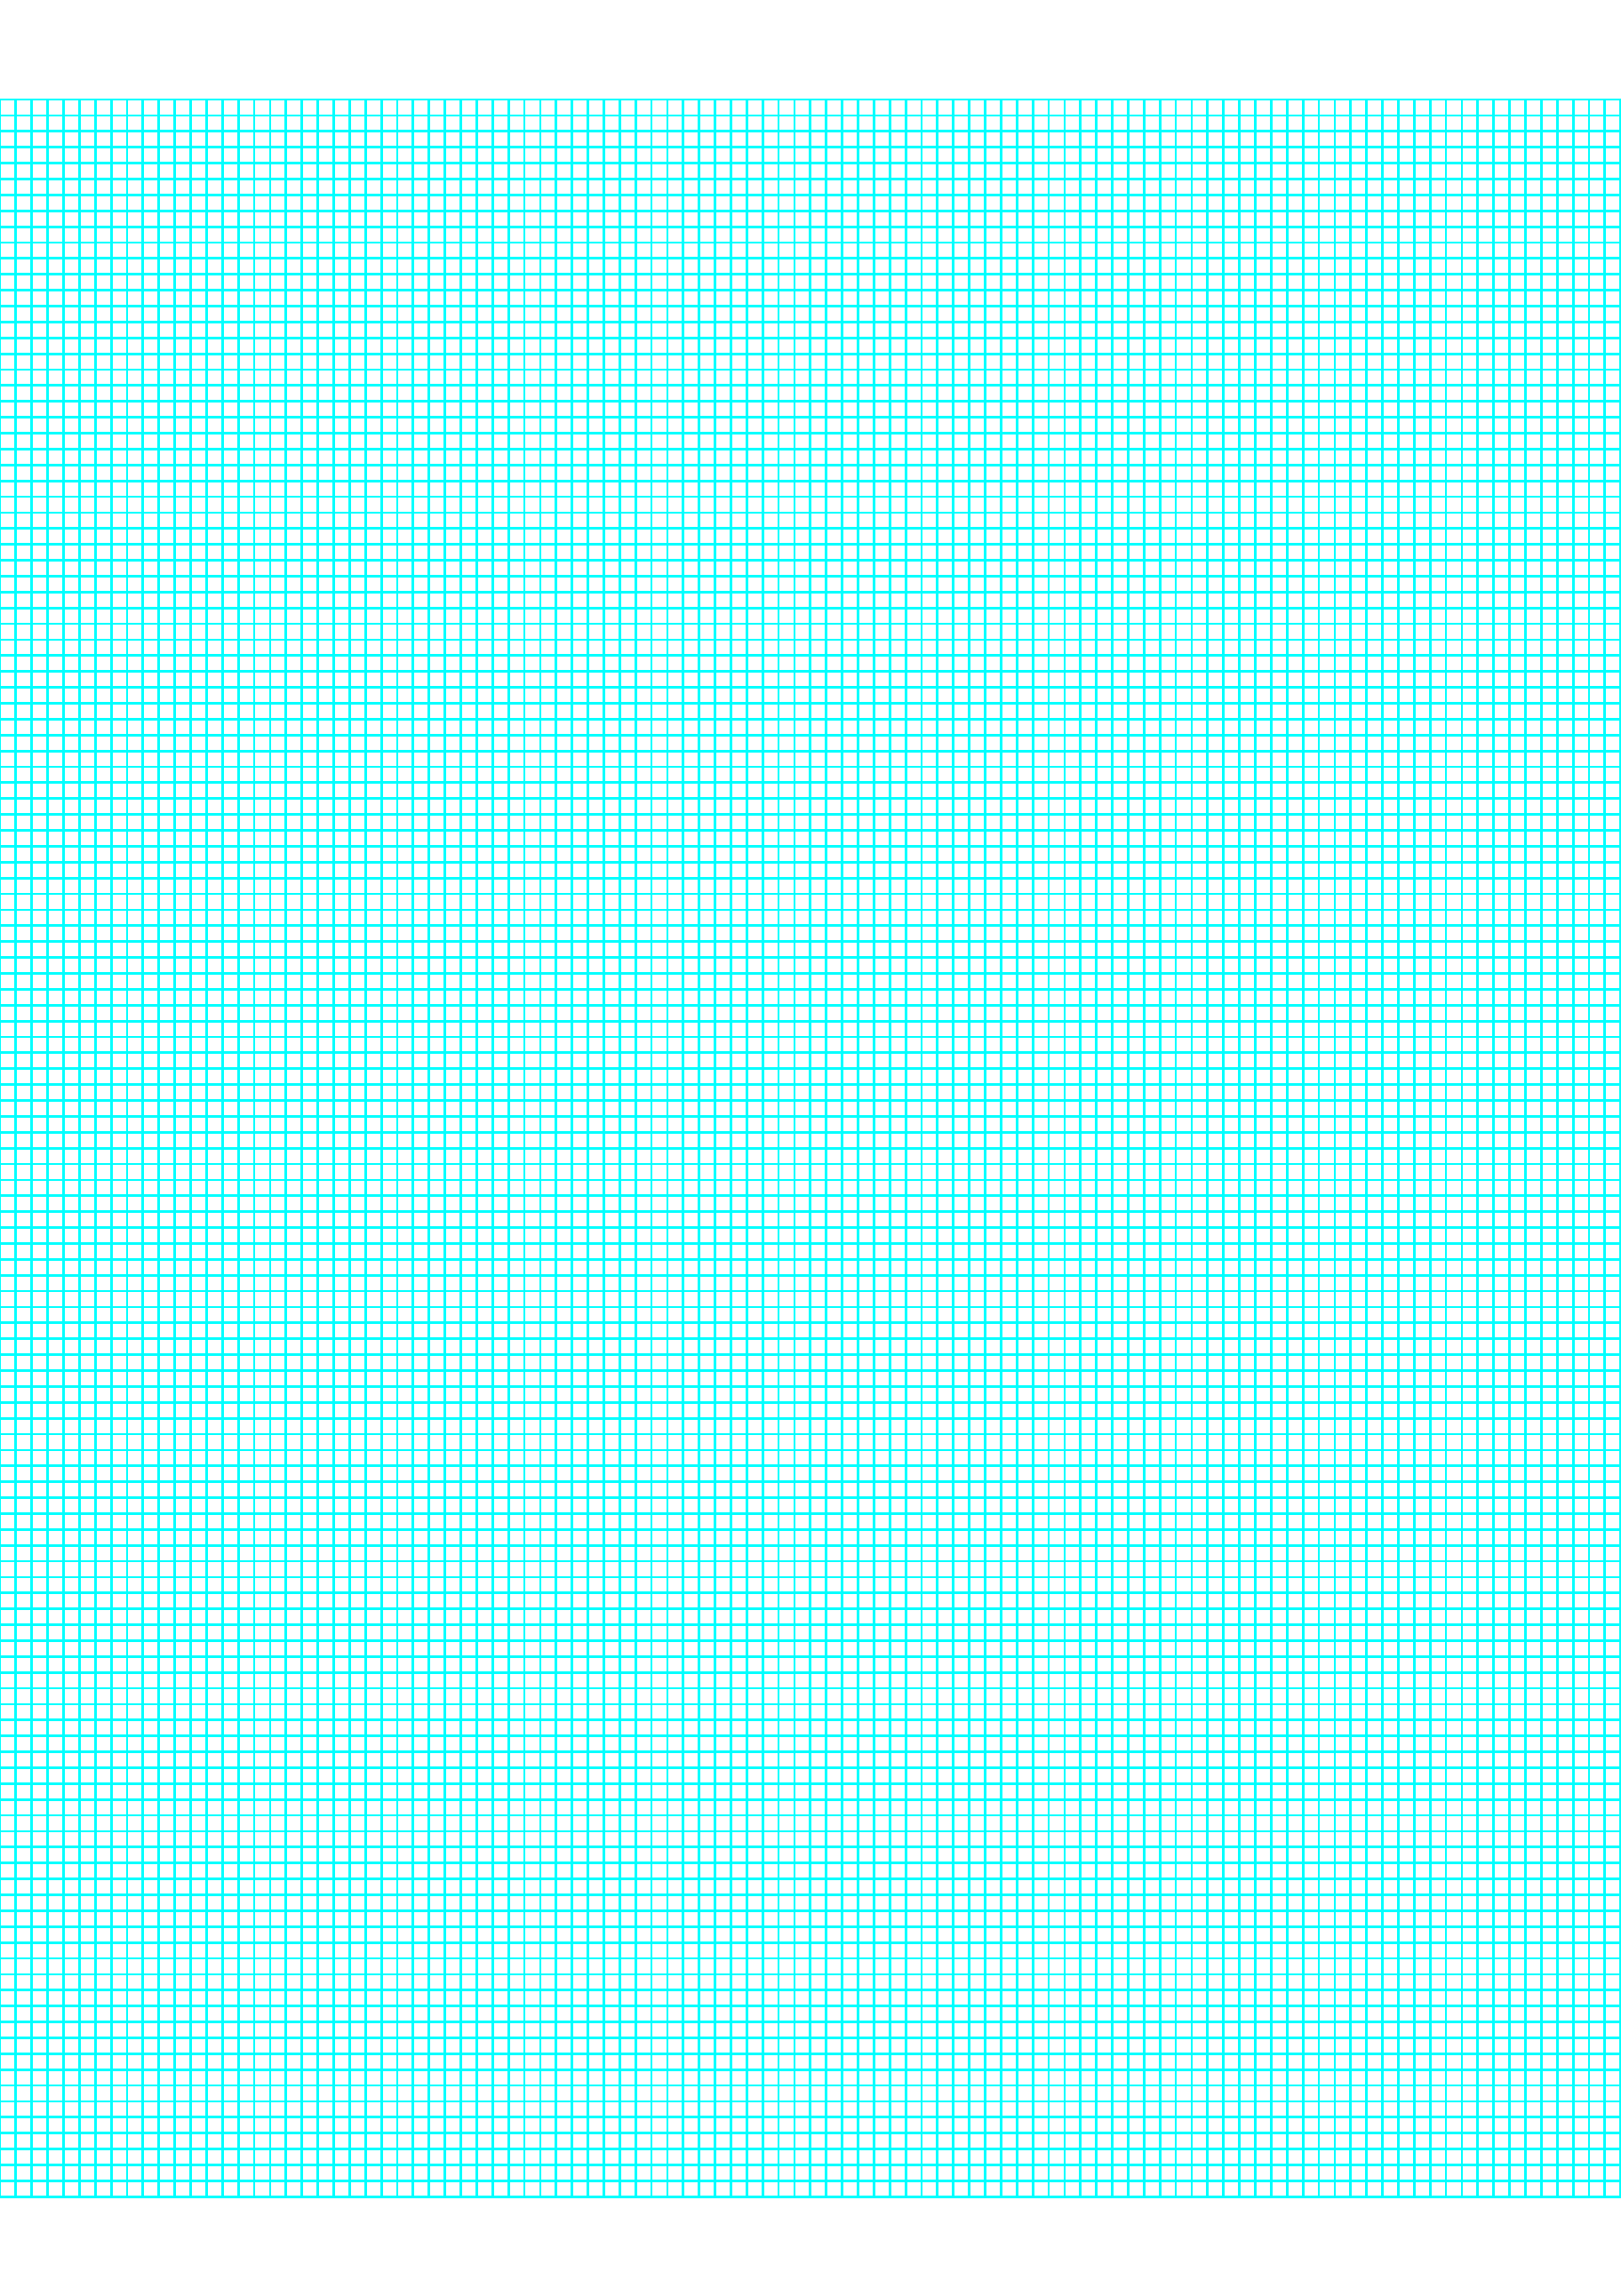 12 Lines Per Inch Graph Paper On Letter Sized Paper Free